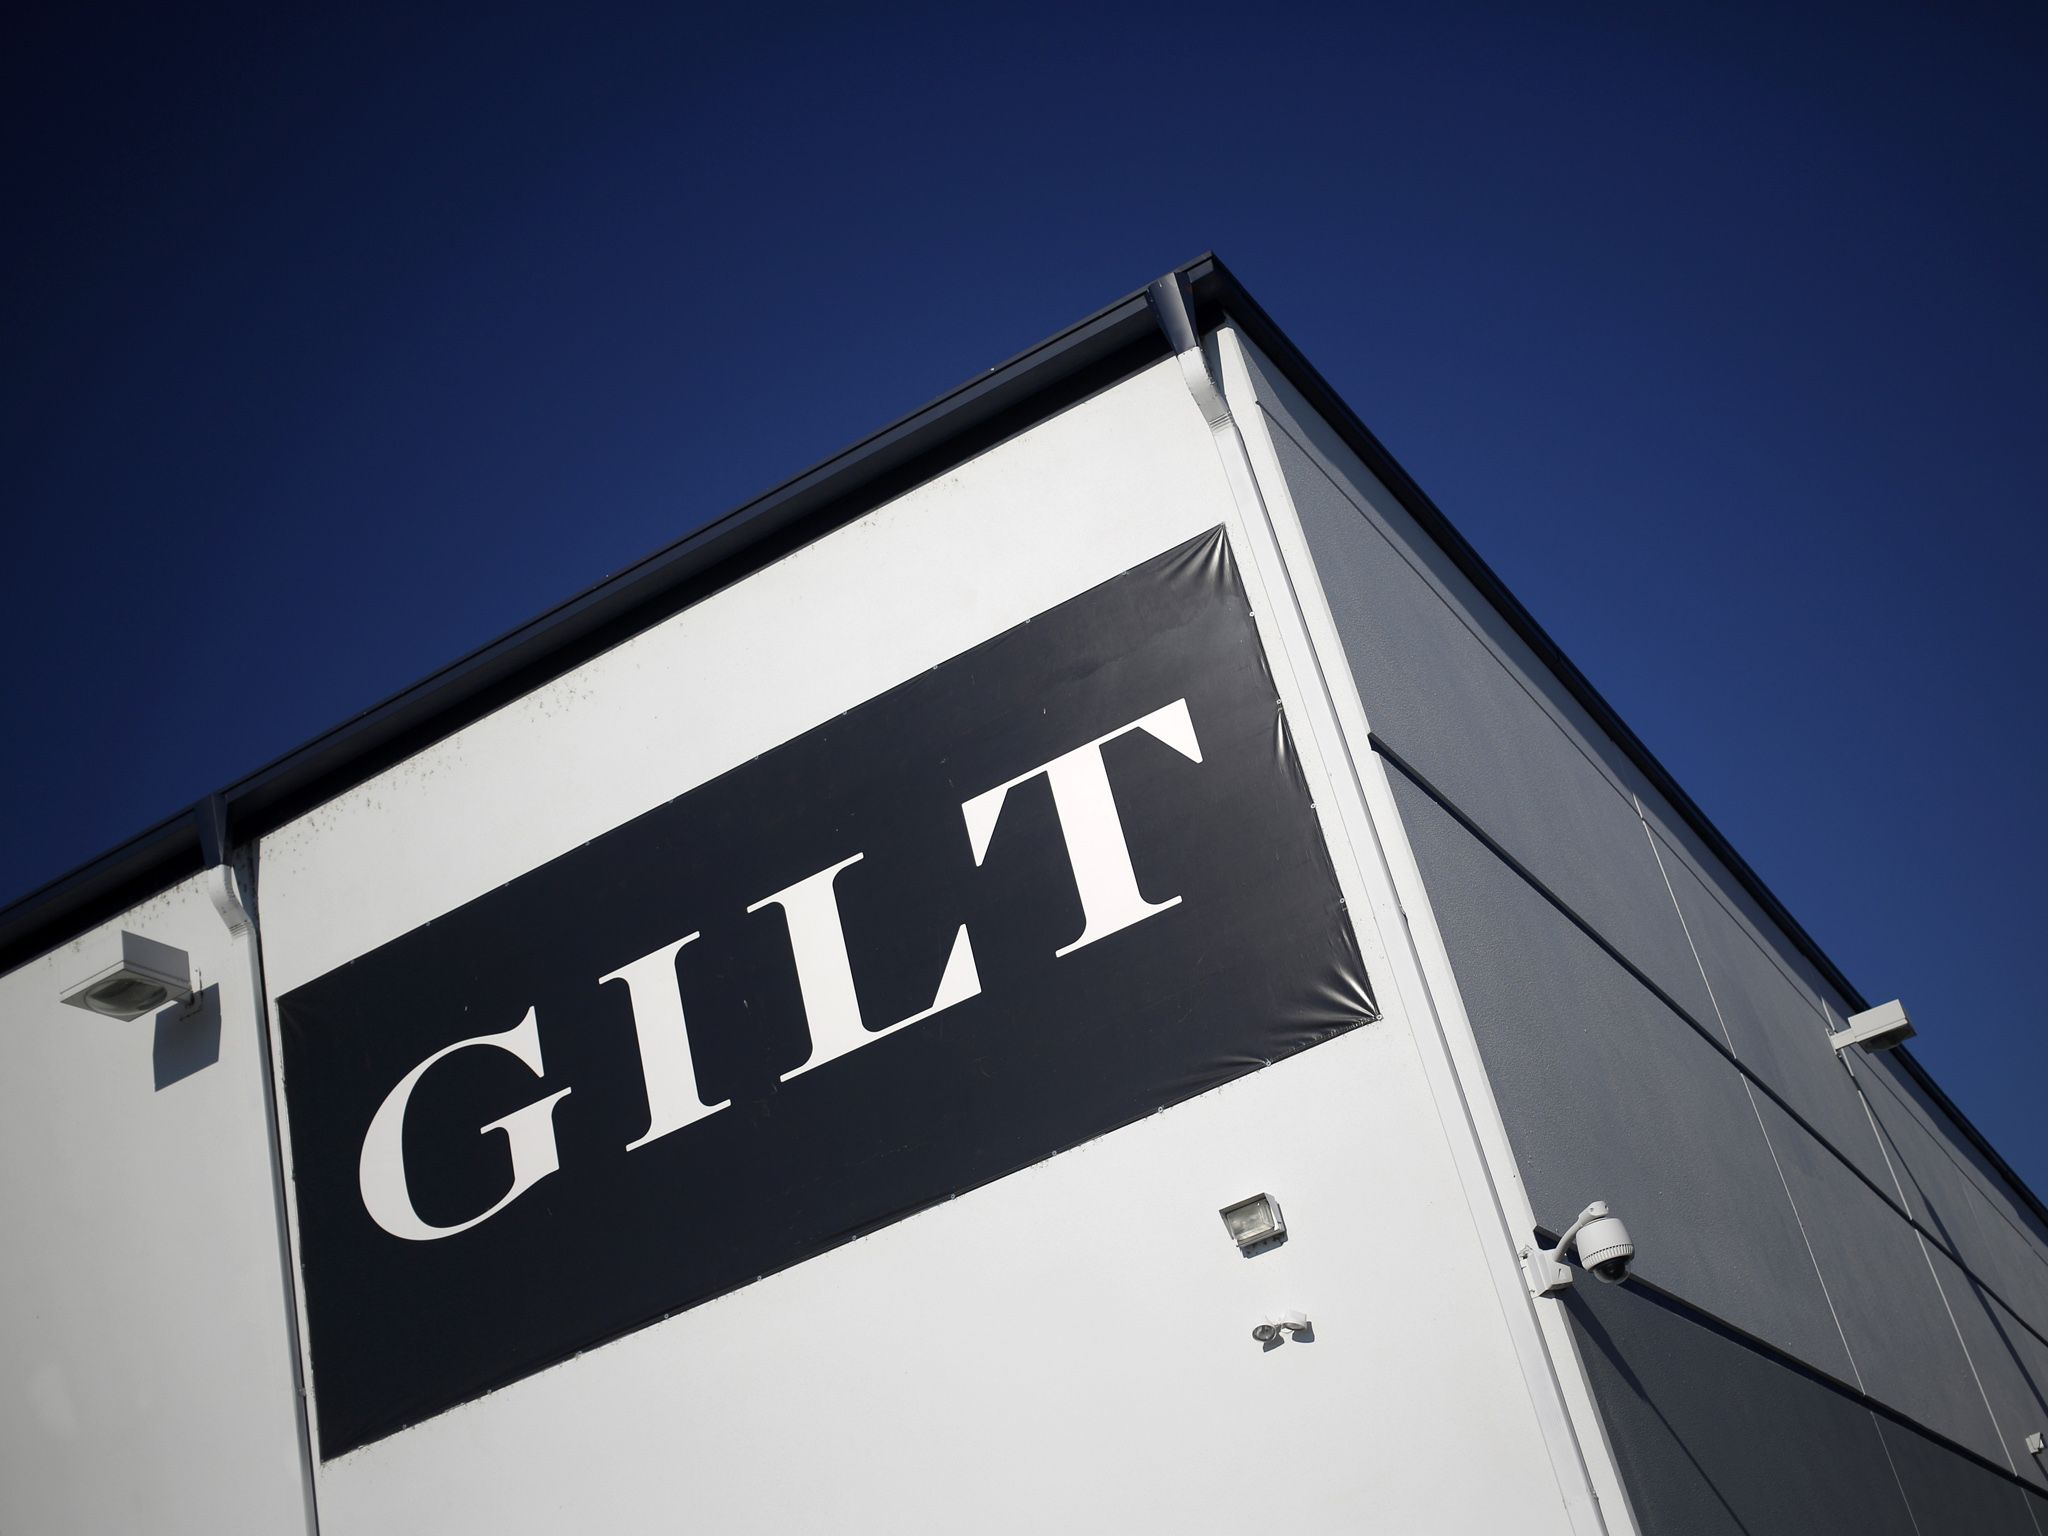 Gilt Groupe Sold for 250 million dollars